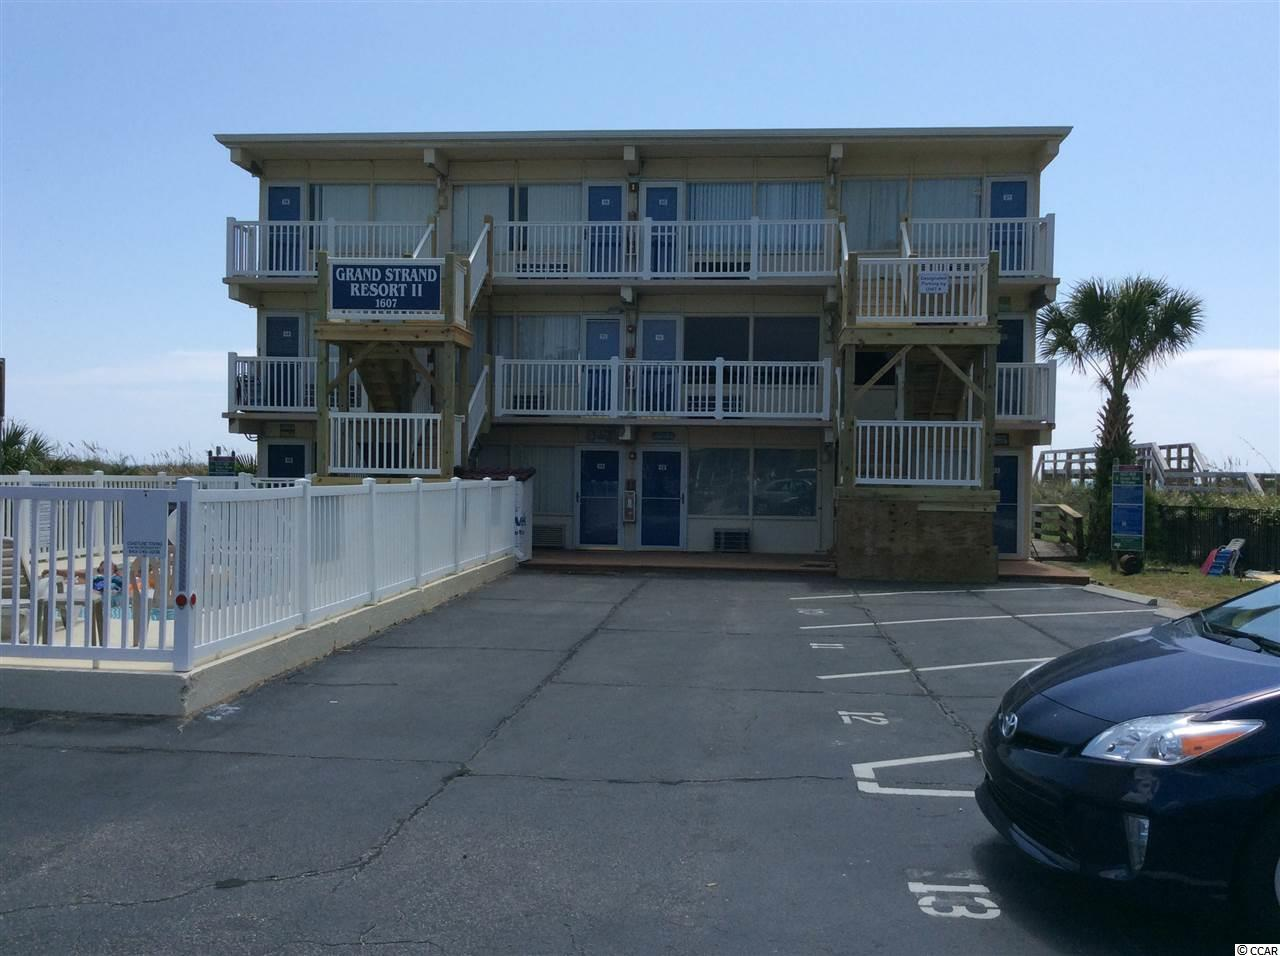 Spectacular Ocean Front View, walk to Mollie Darcy's and more. Close to Barefoot Landing, Great Golf close by. New floor, new paint, New Appliances, low HOA fee for ocean front, insurance included in hoa.